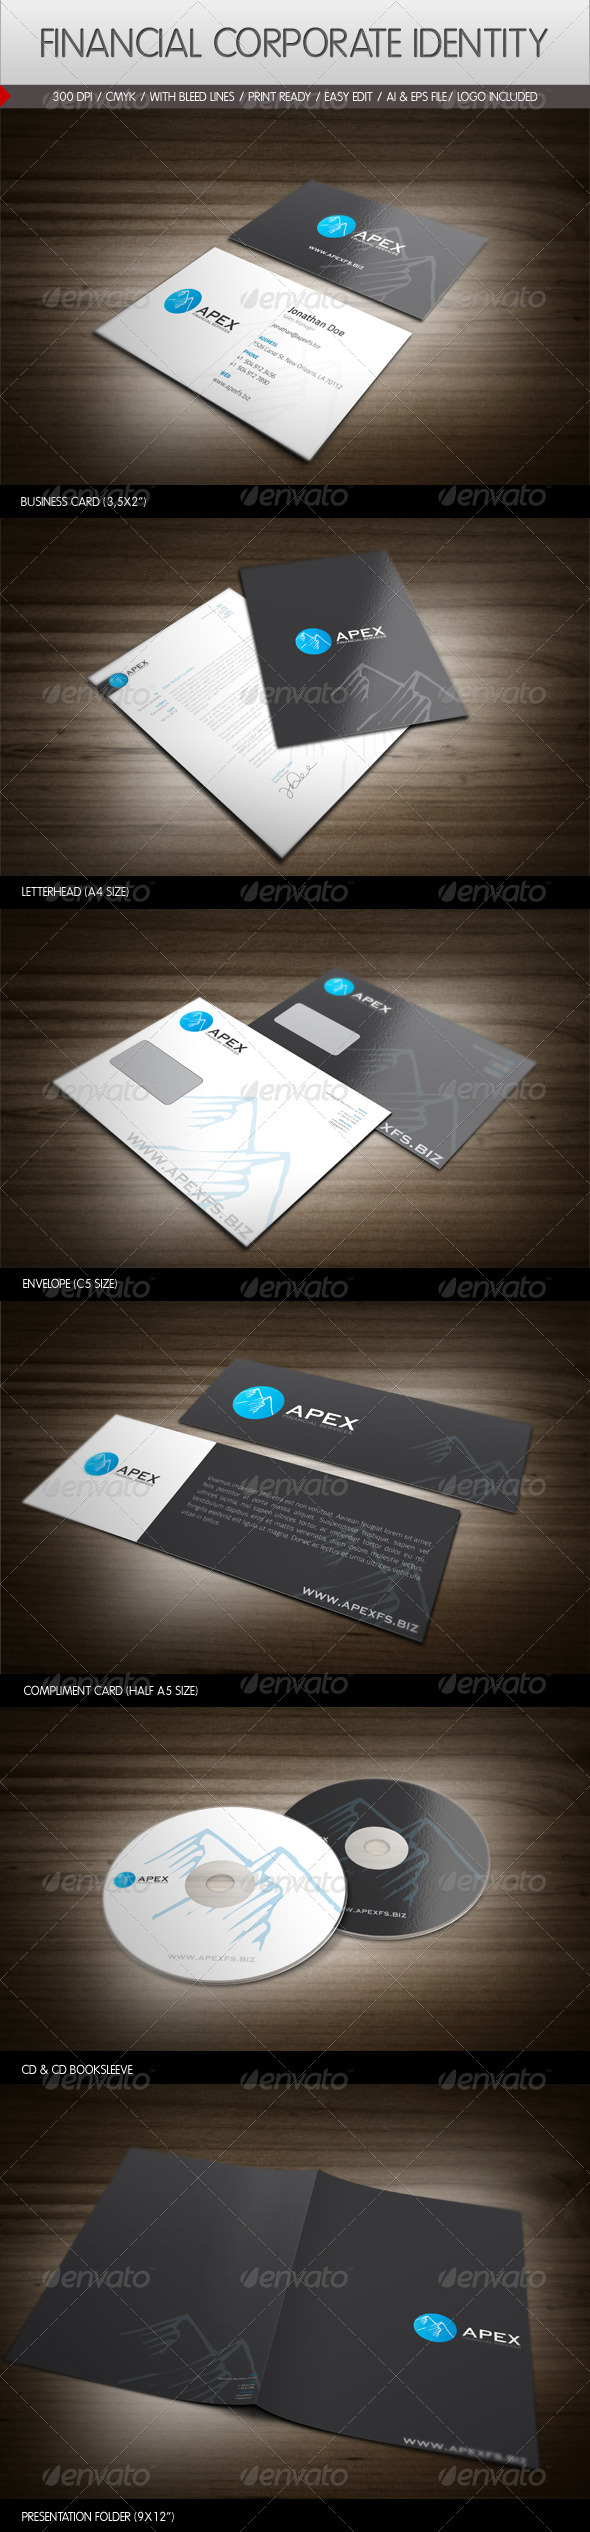 Financial Services Corporate Identity - Stationery Print Templates